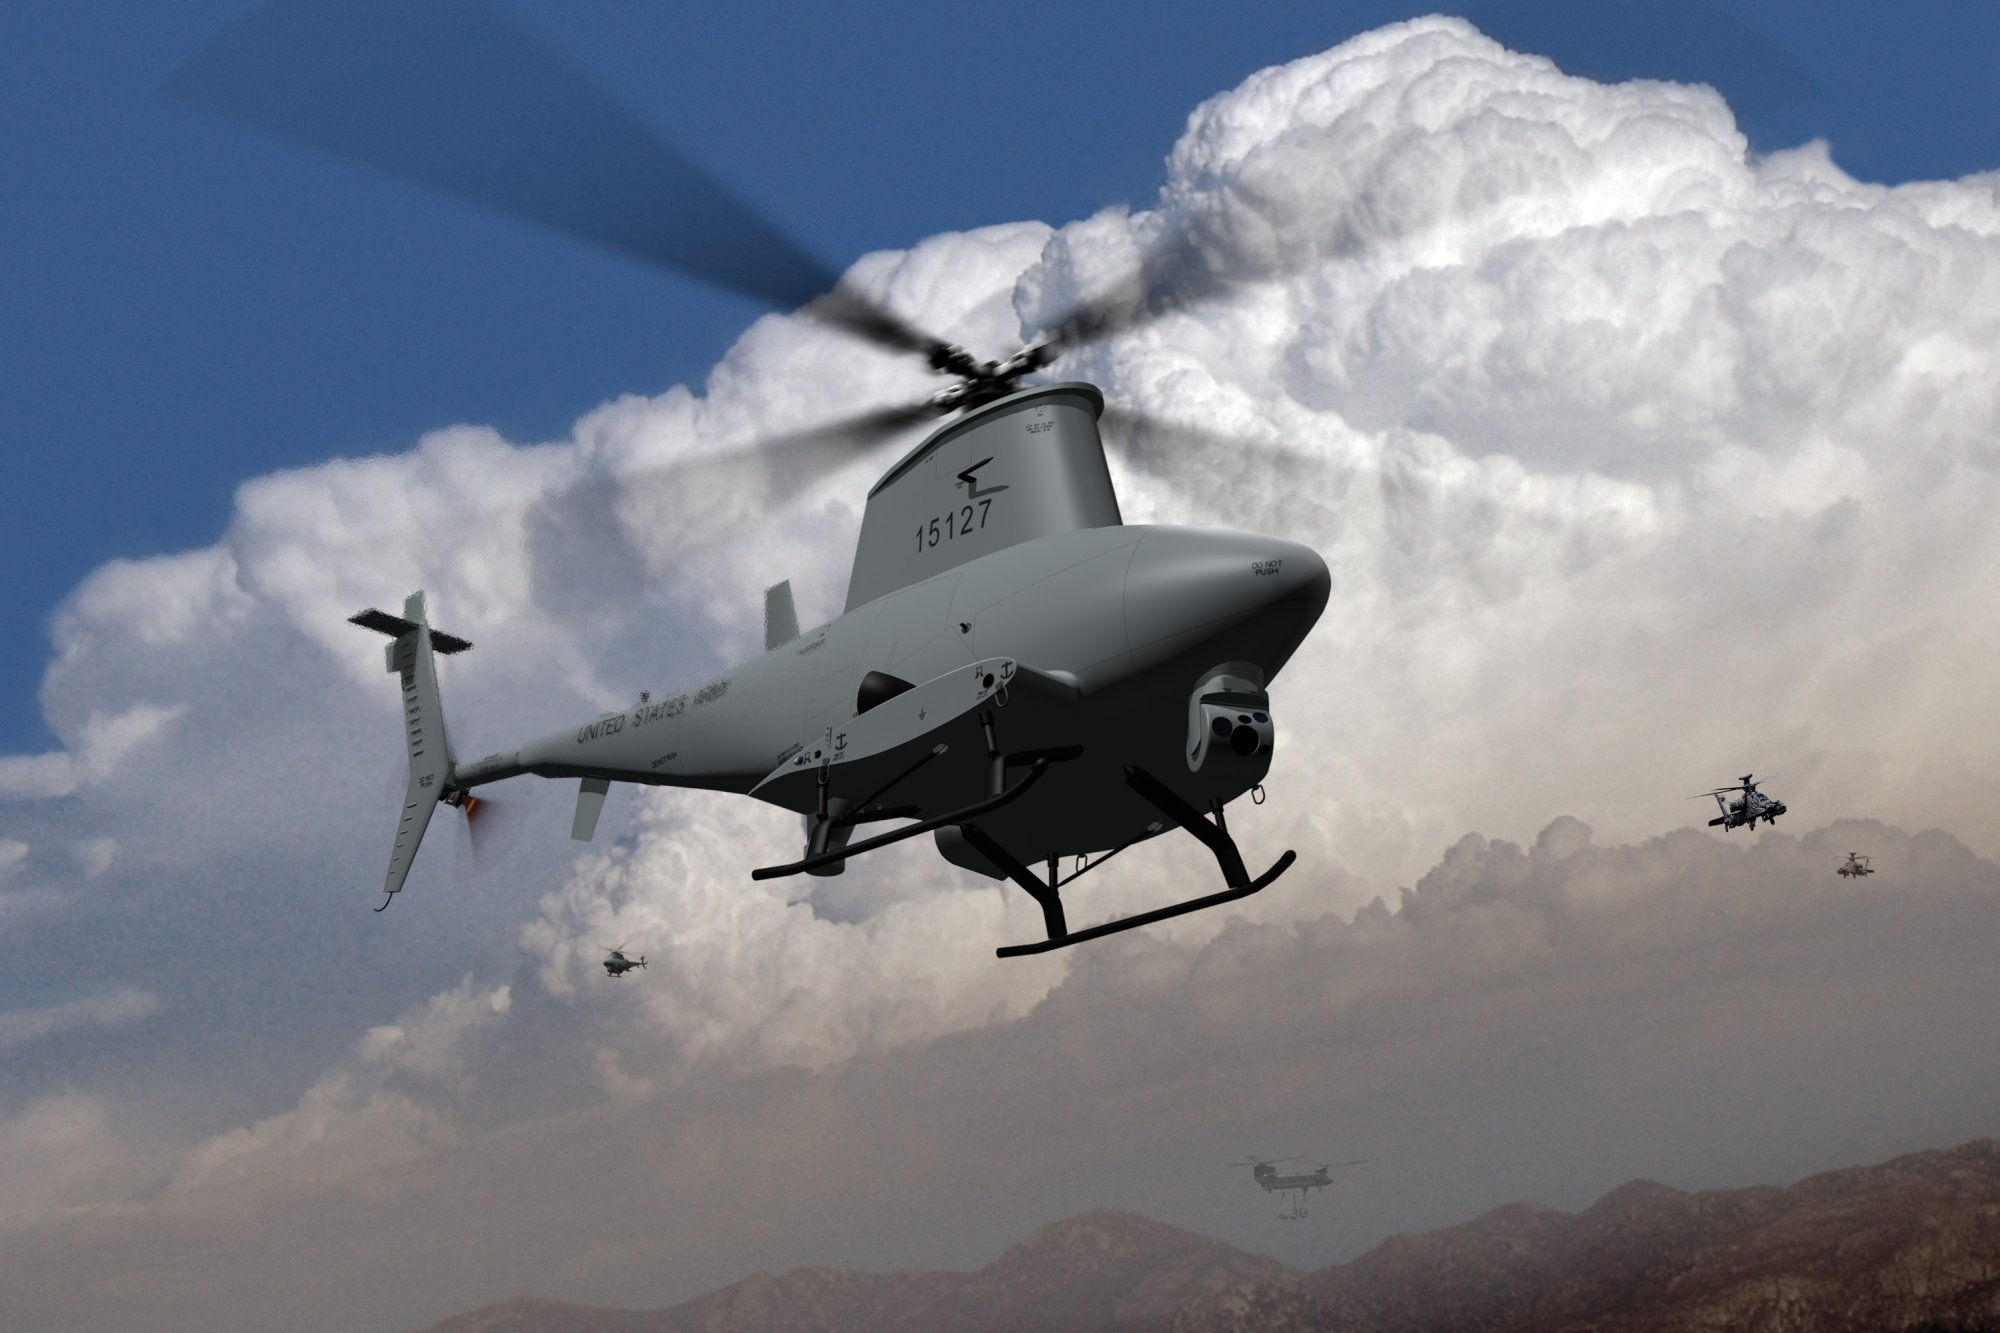 Aircraft military Helicopters vehicles HD Wallpaper